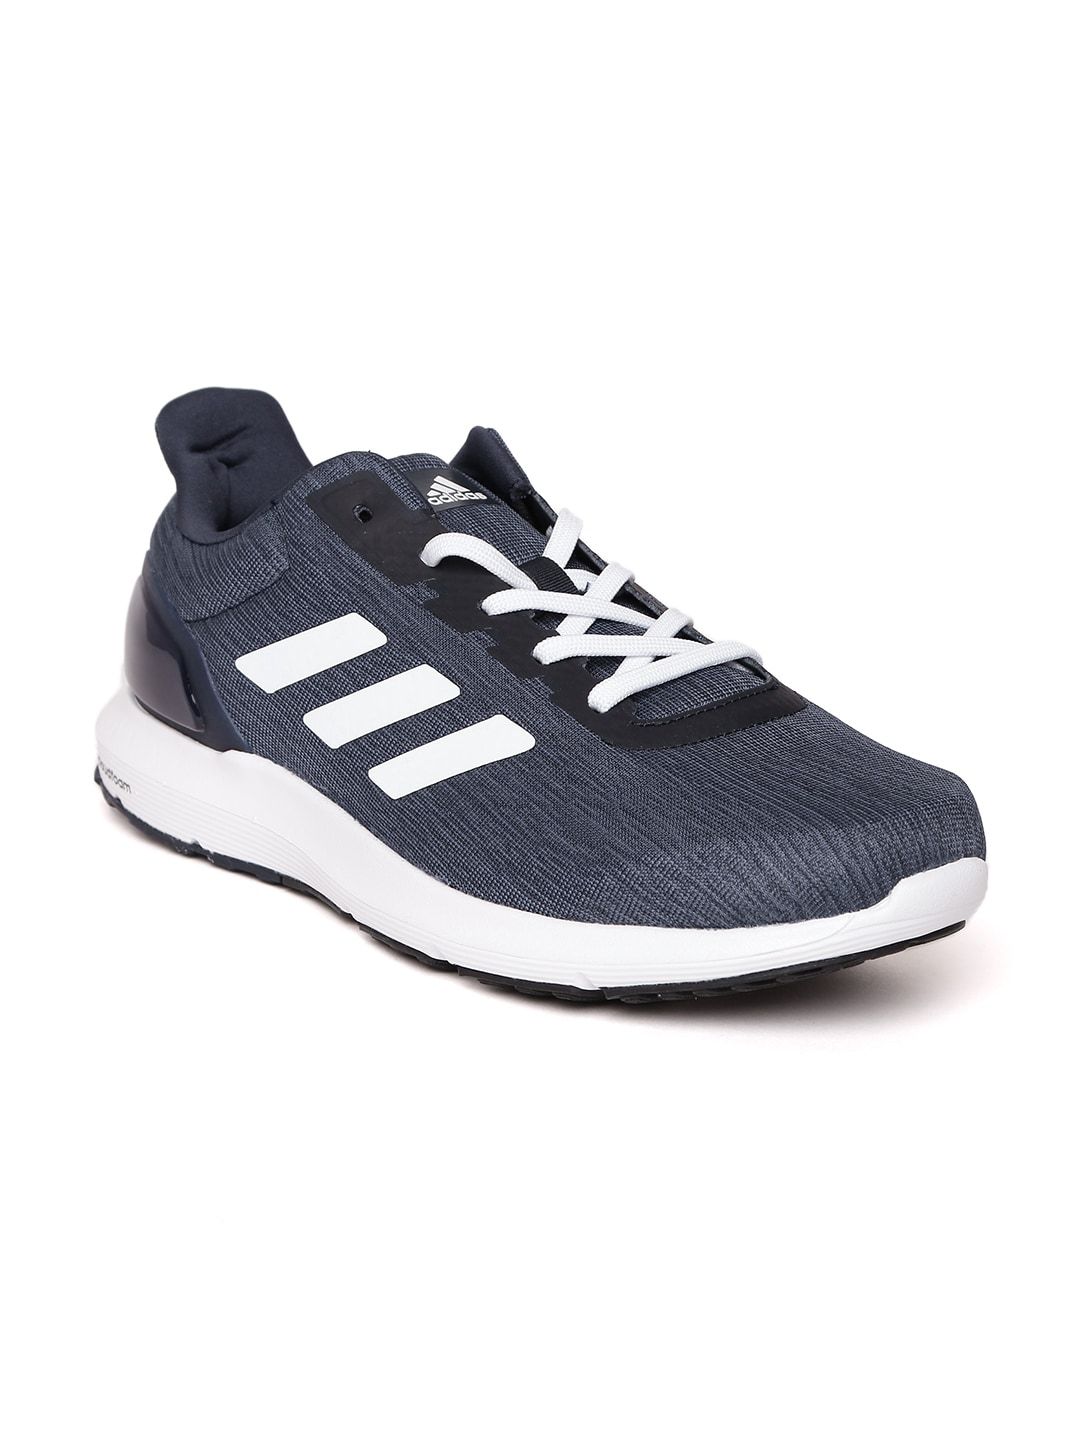 huge discount 9c45b cad54 Adidas Shoes - Buy Adidas Shoes for Men  Women Online - Mynt